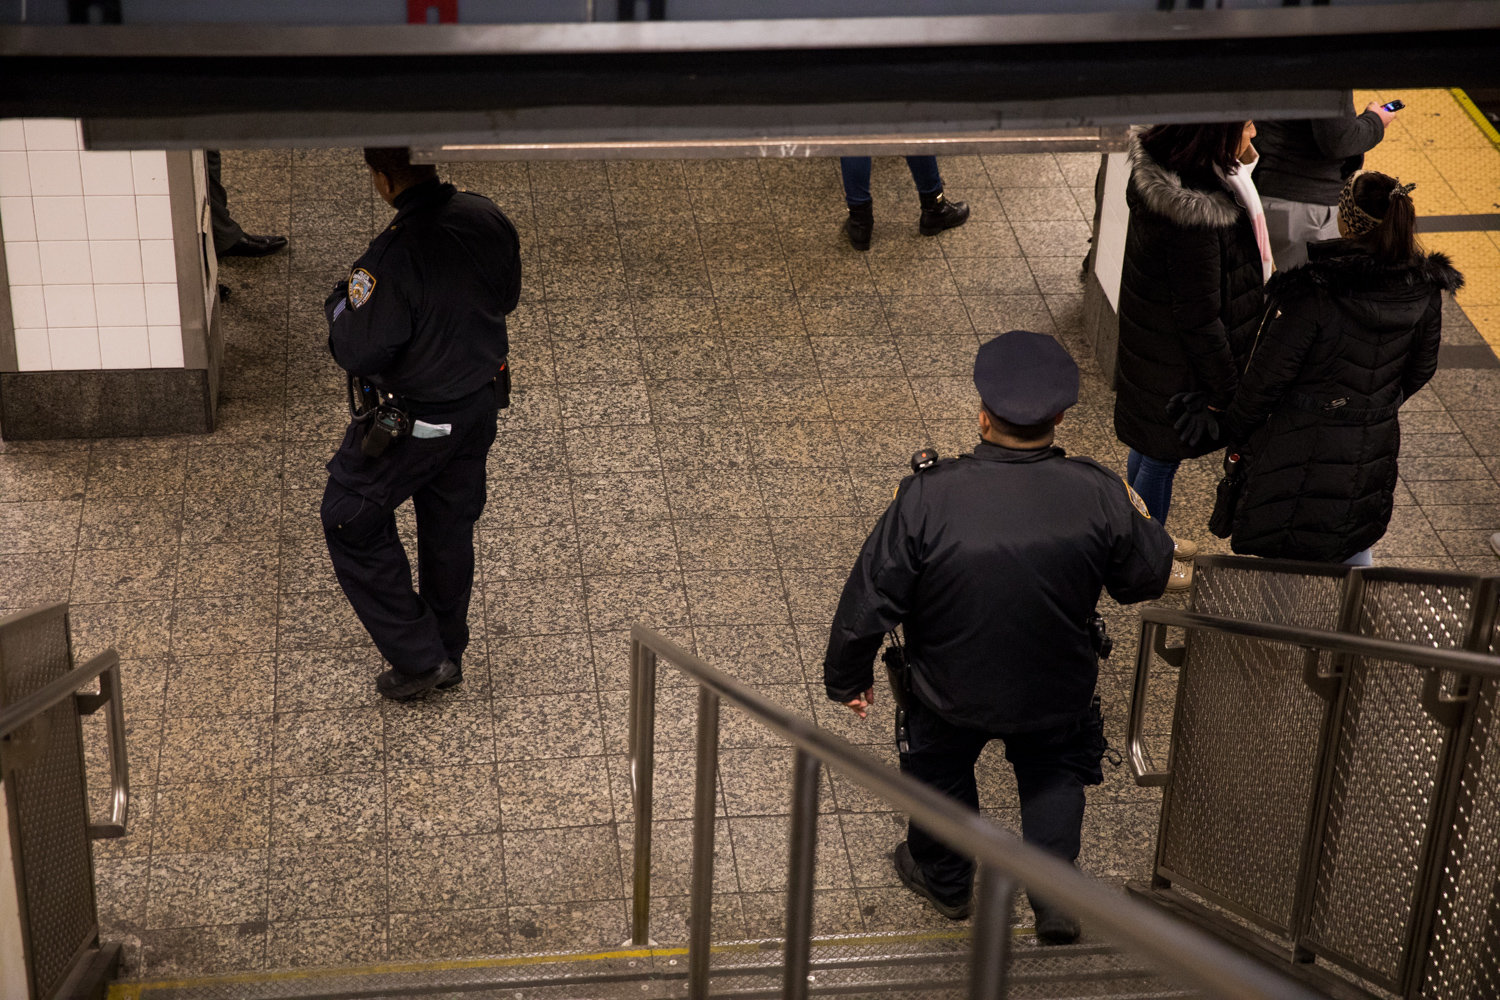 Police officers walk down to a train platform at Grand Central 42nd Street. If it were up to Assemblyman Jeffrey Dinowitz, the $250 million allocated for new police officers in the subway would go toward actually fixing the transit system.